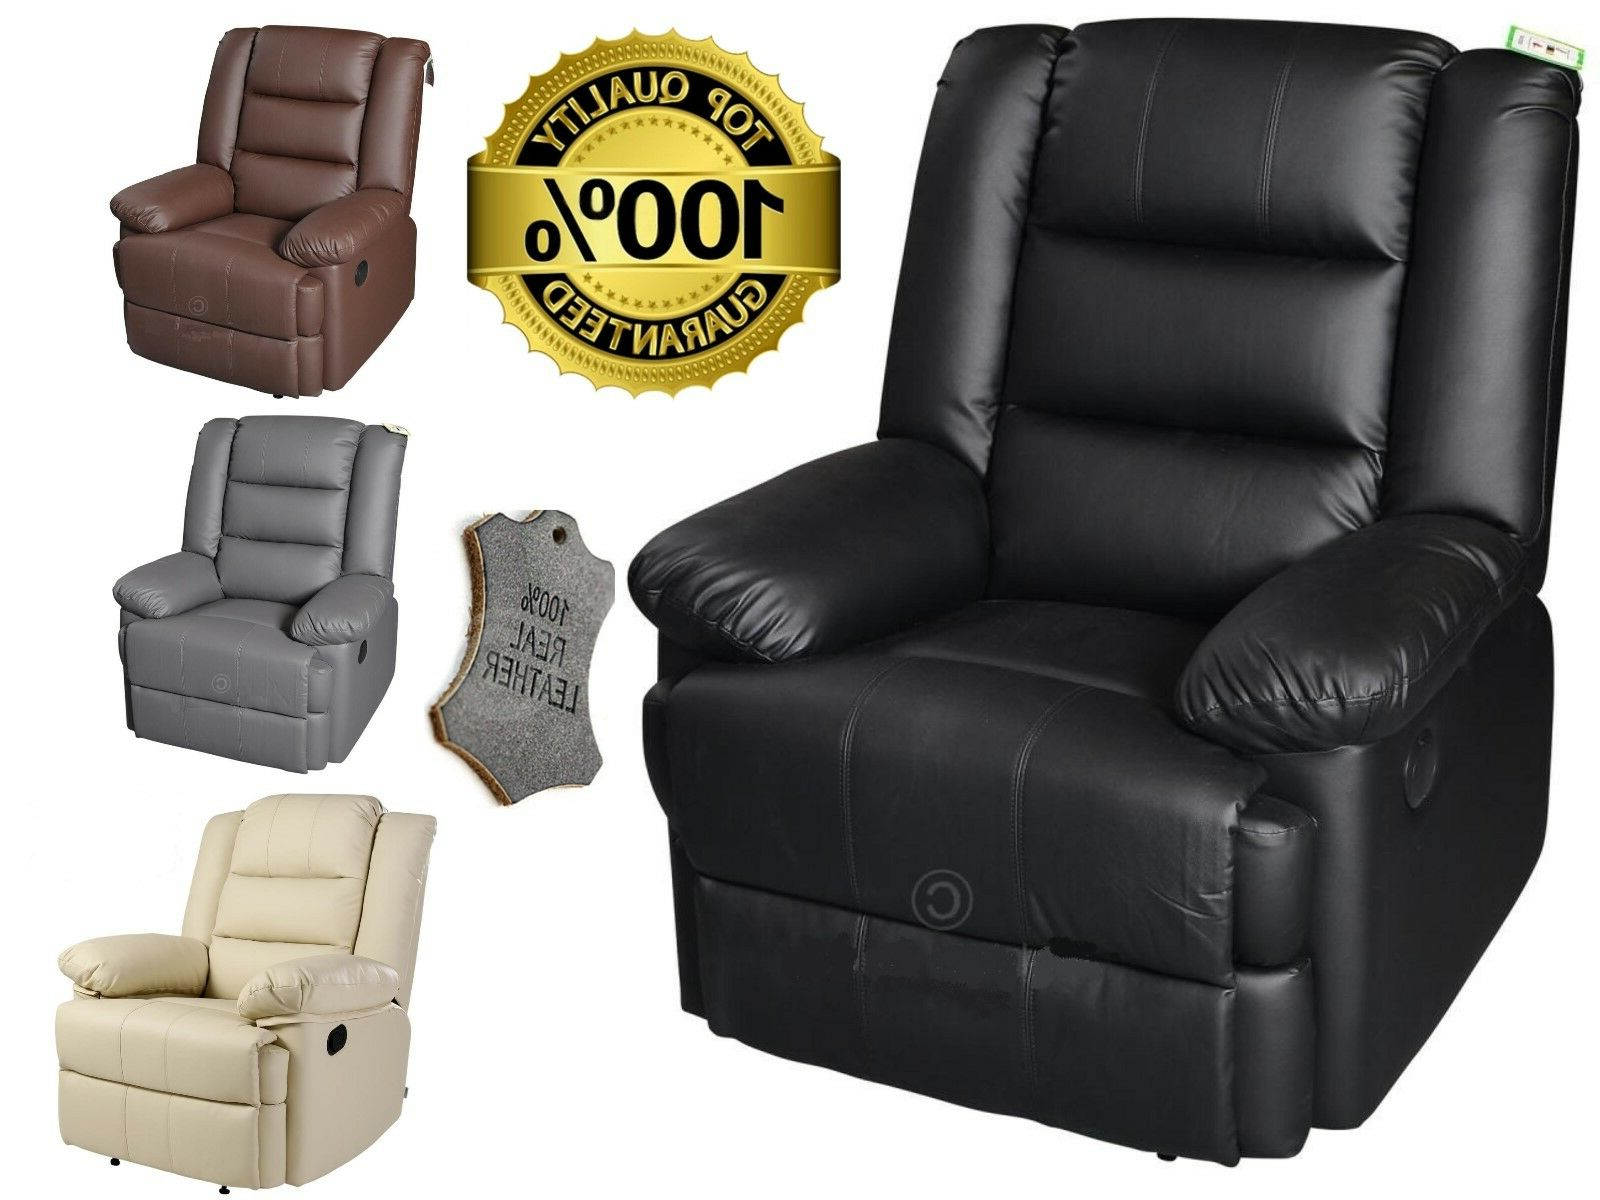 Well Known Details About Capri Luxury Bonded Leather Electric Recliner Chair Leather Armchair Furniture In Montenegro Faux Leather Club Chairs (View 10 of 20)